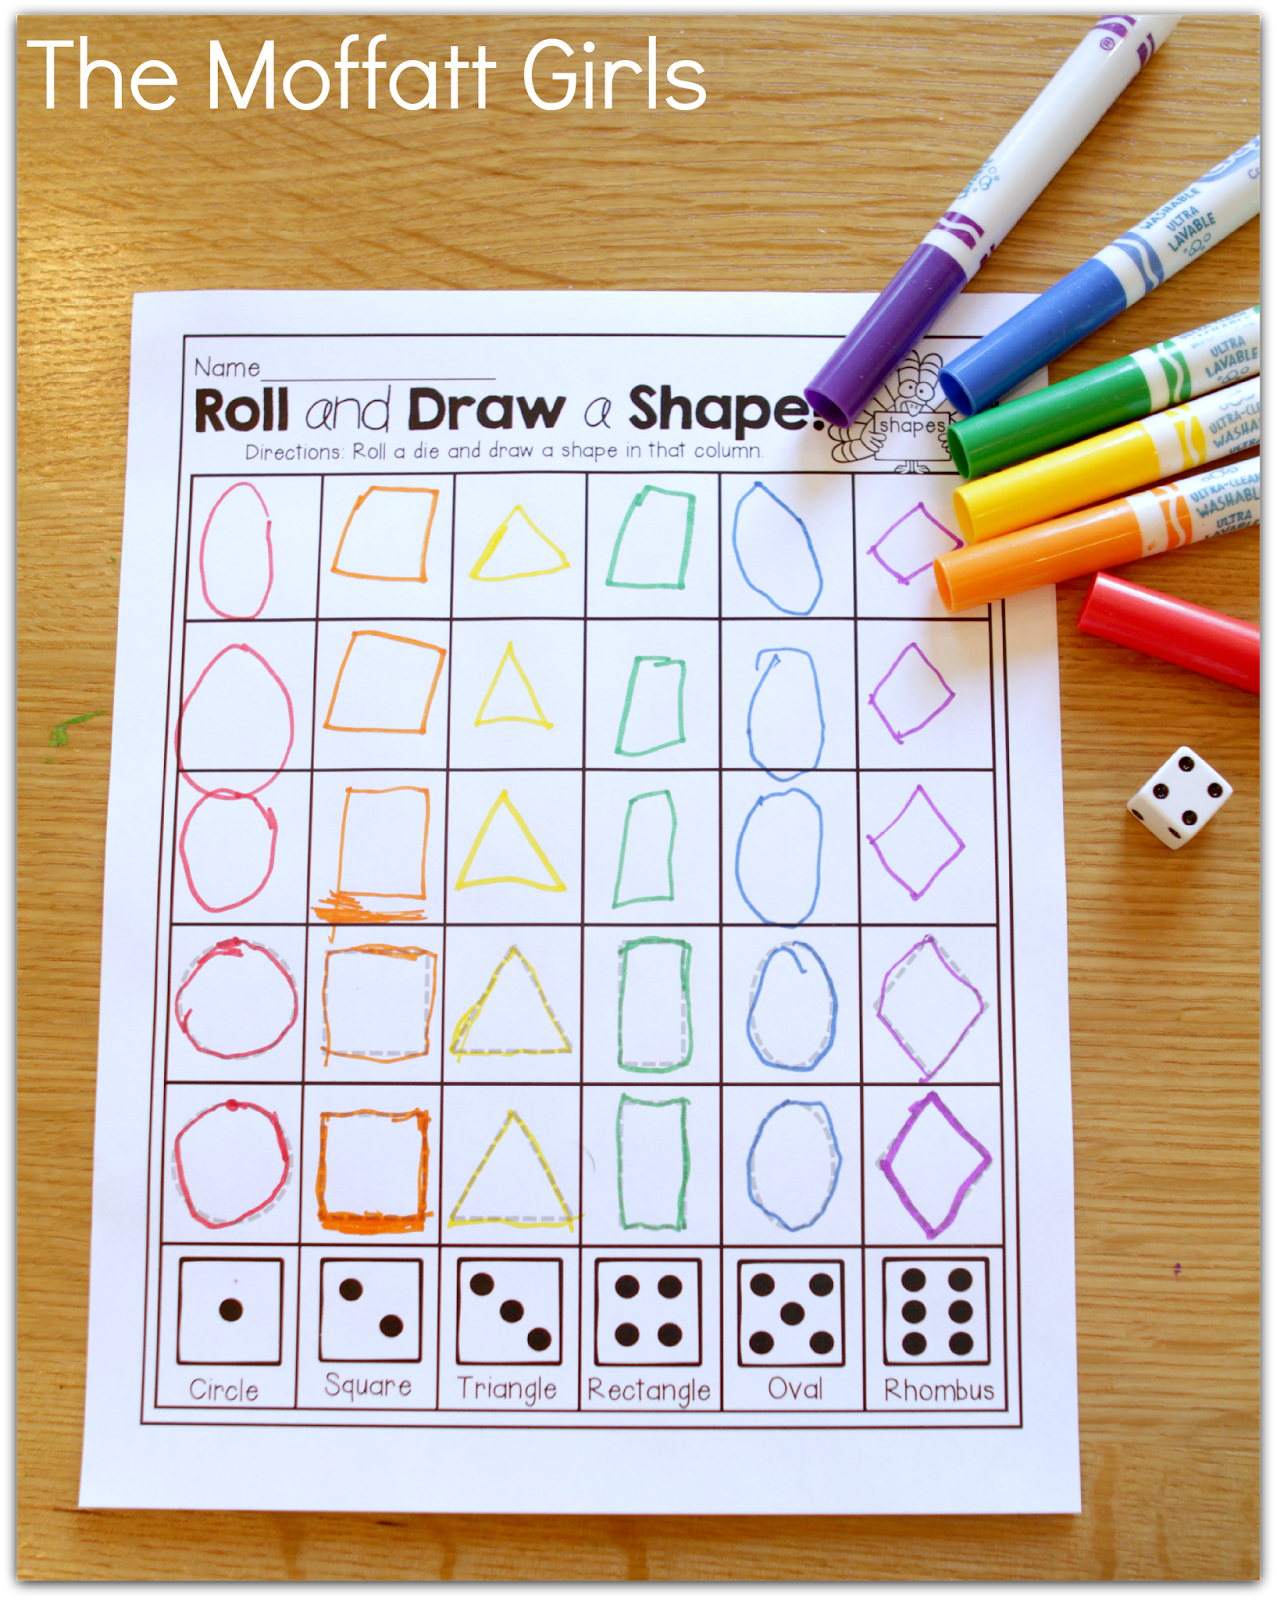 Roll a die and trace/draw a shape! TONS of great ideas!